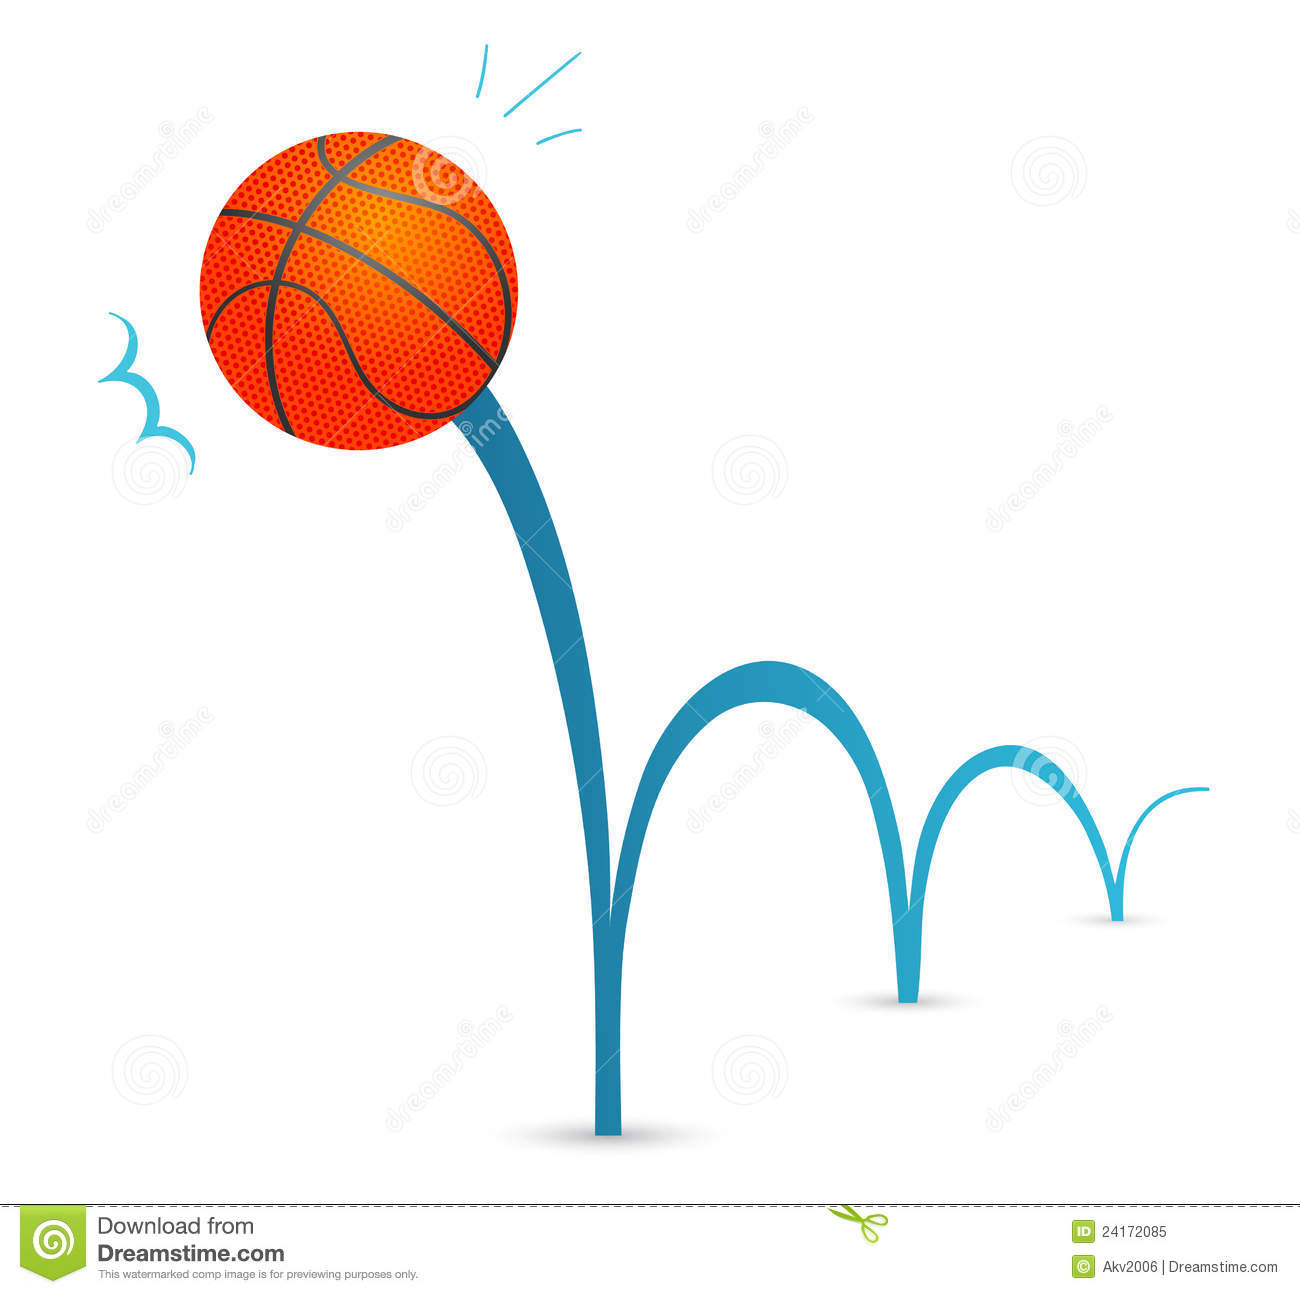 Bouncing Basketball Clipart - Clipart Kid